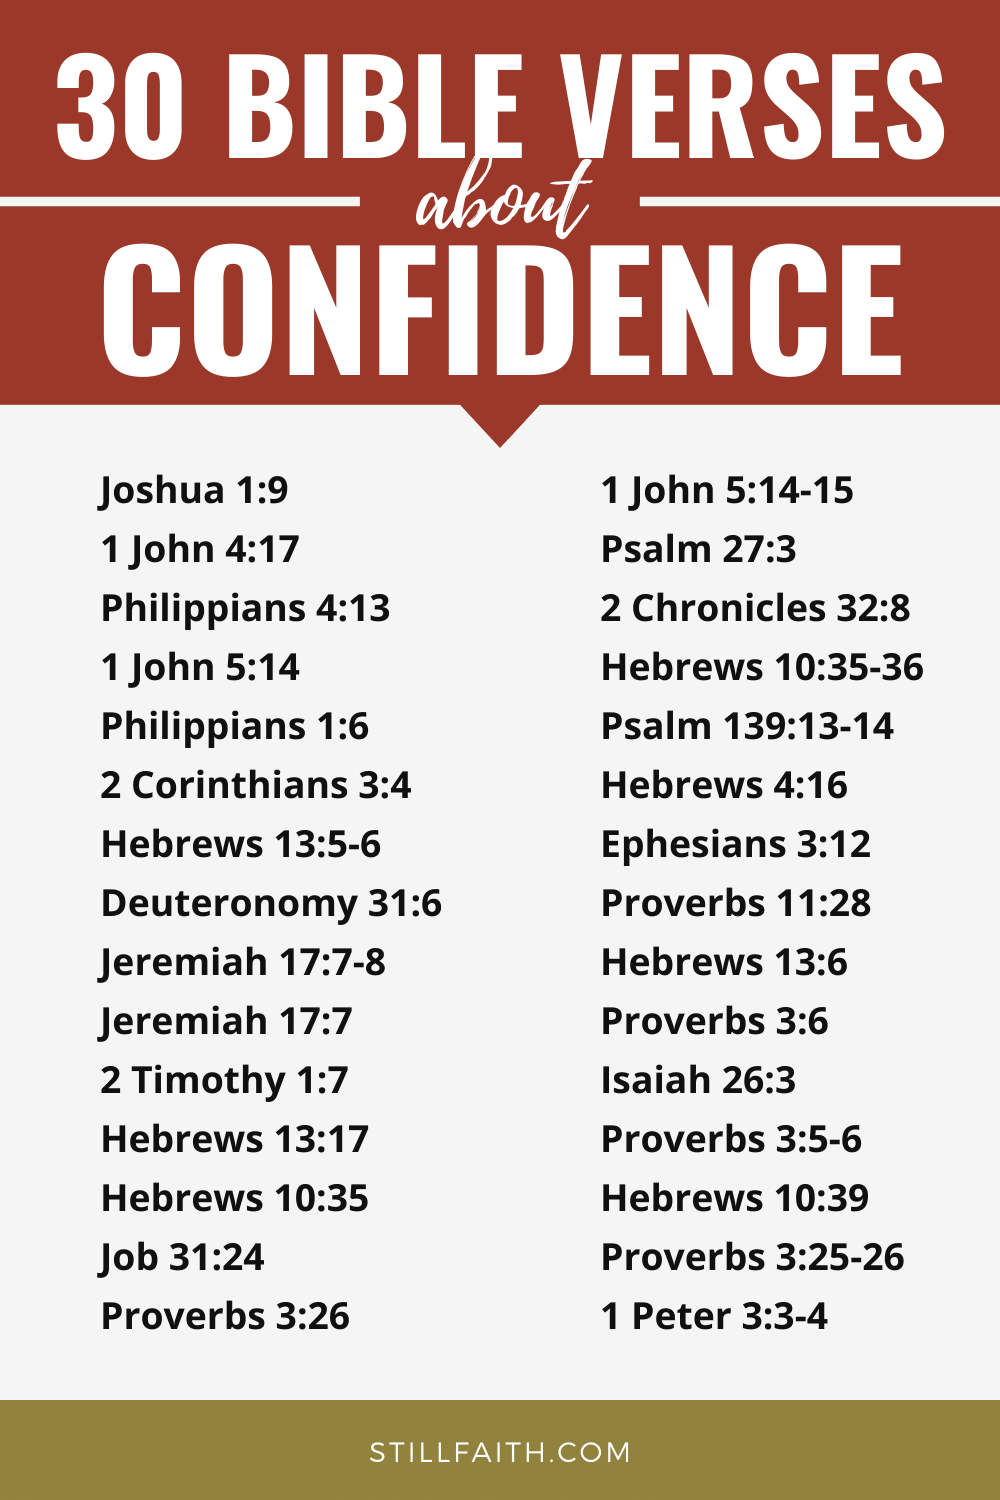 164 Bible Verses about Confidence